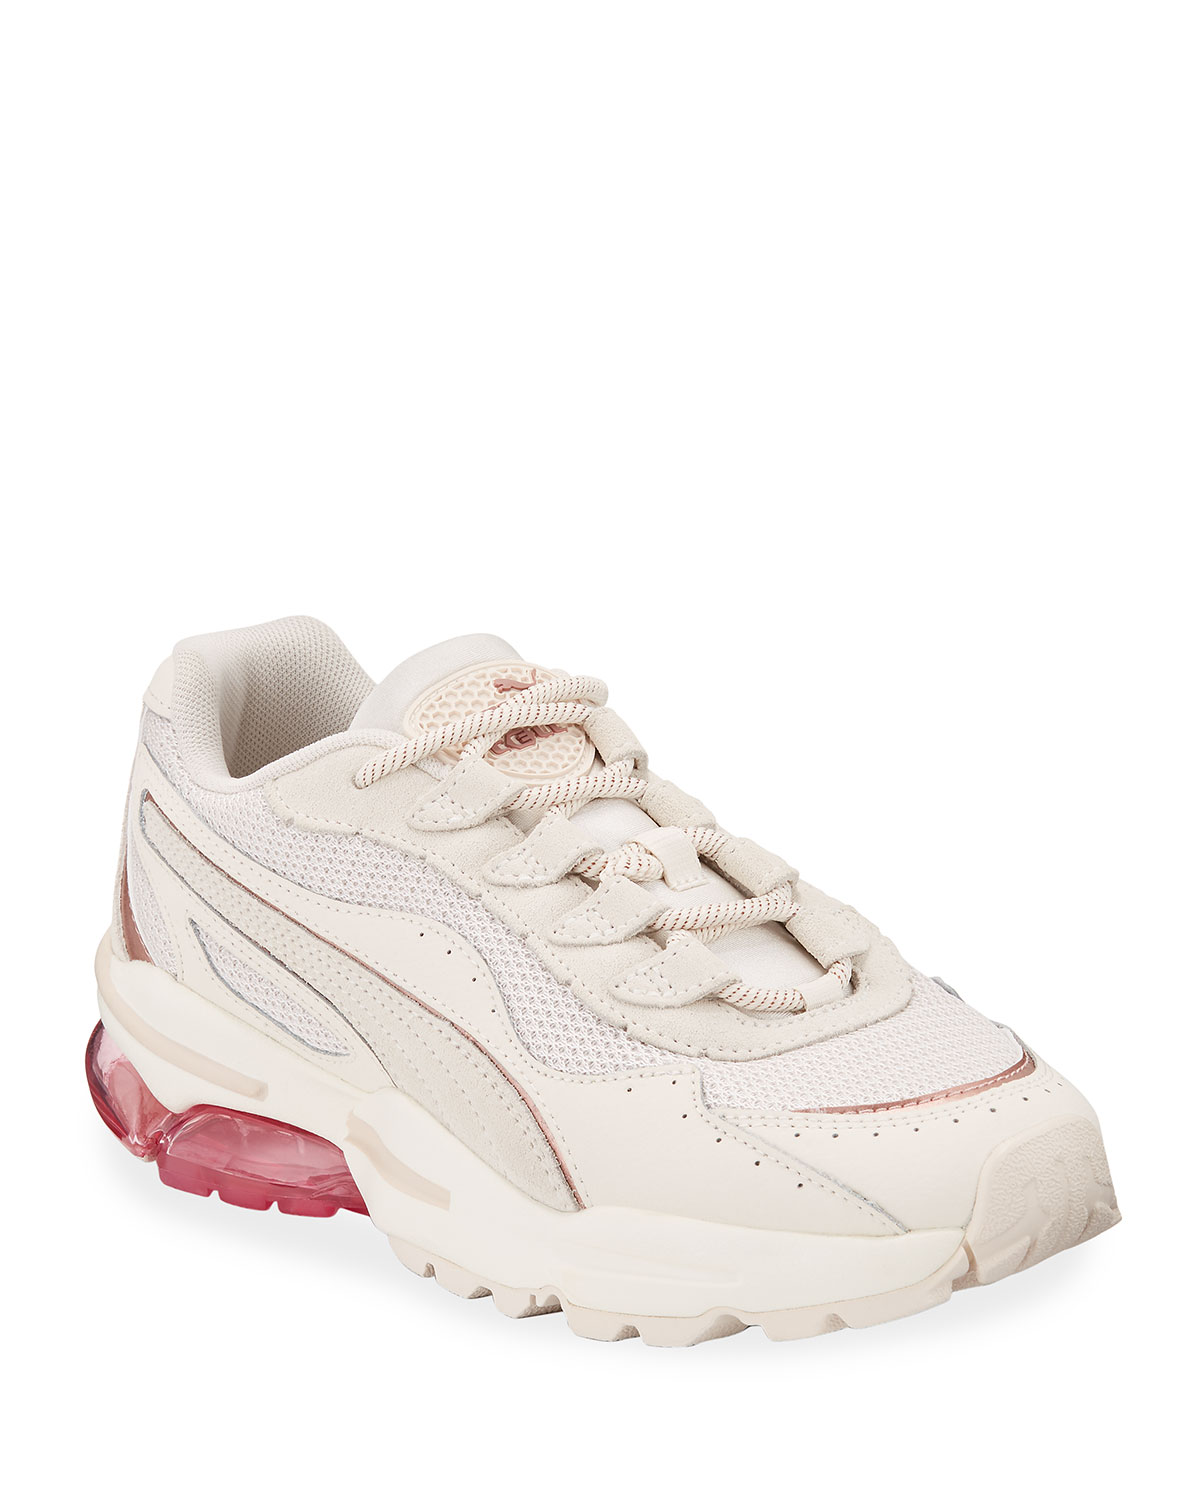 CELL Stellar Soft 90s-Inspired Sneakers